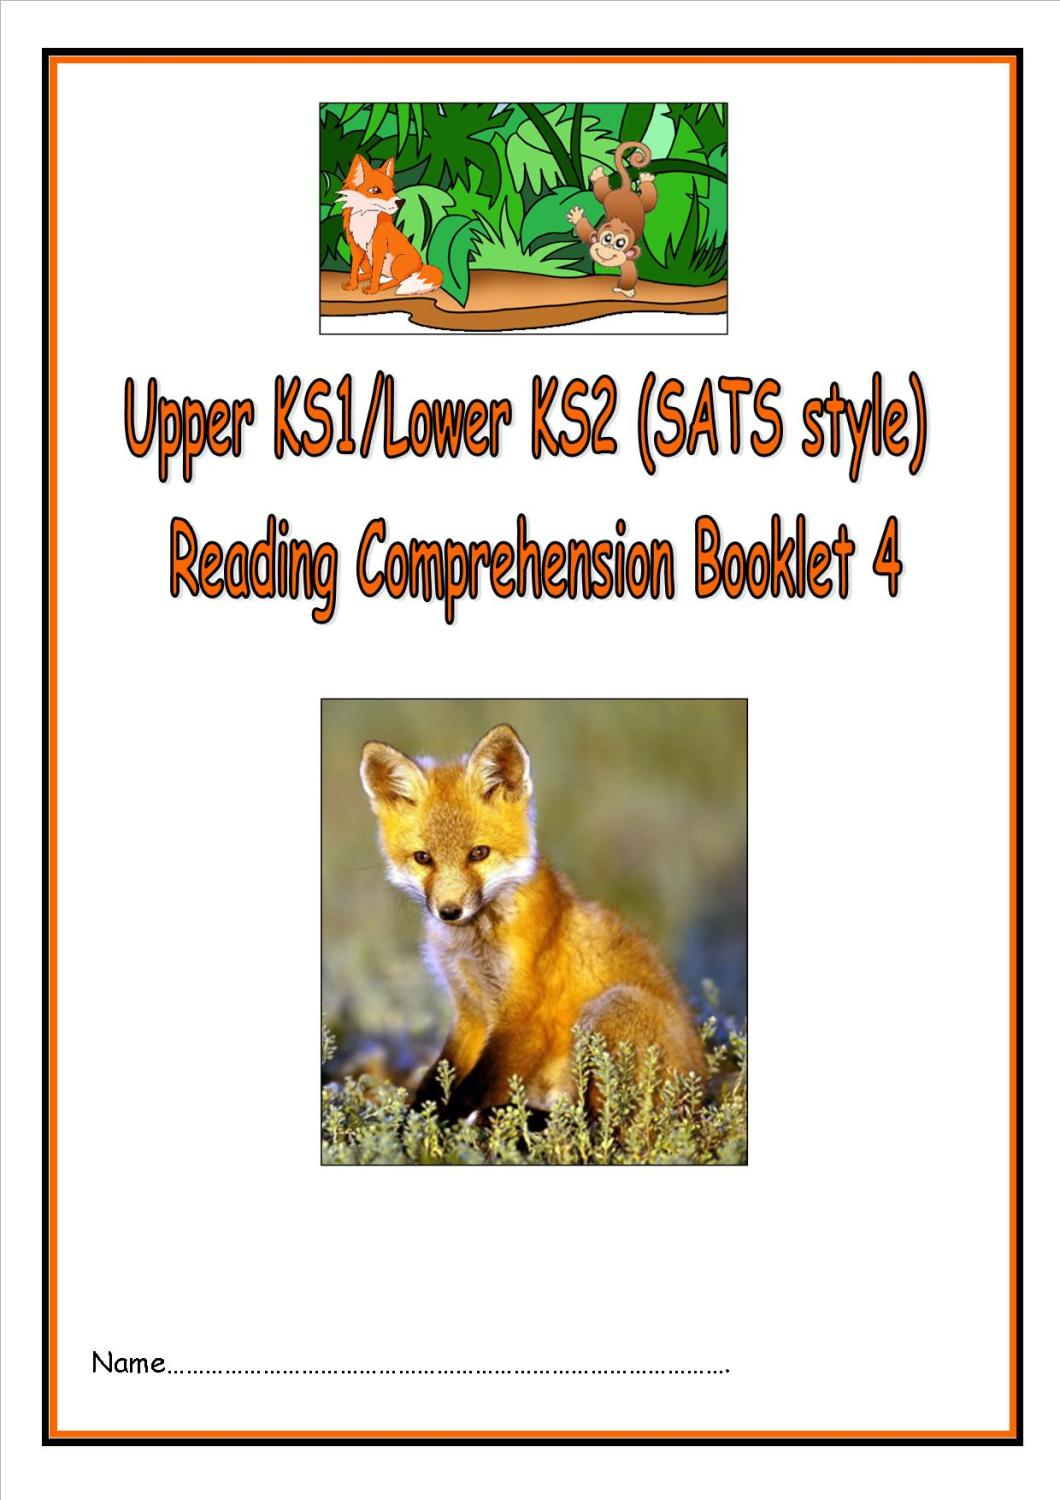 New KS1/LKS2 SATs style reading comprehension booklet (3).